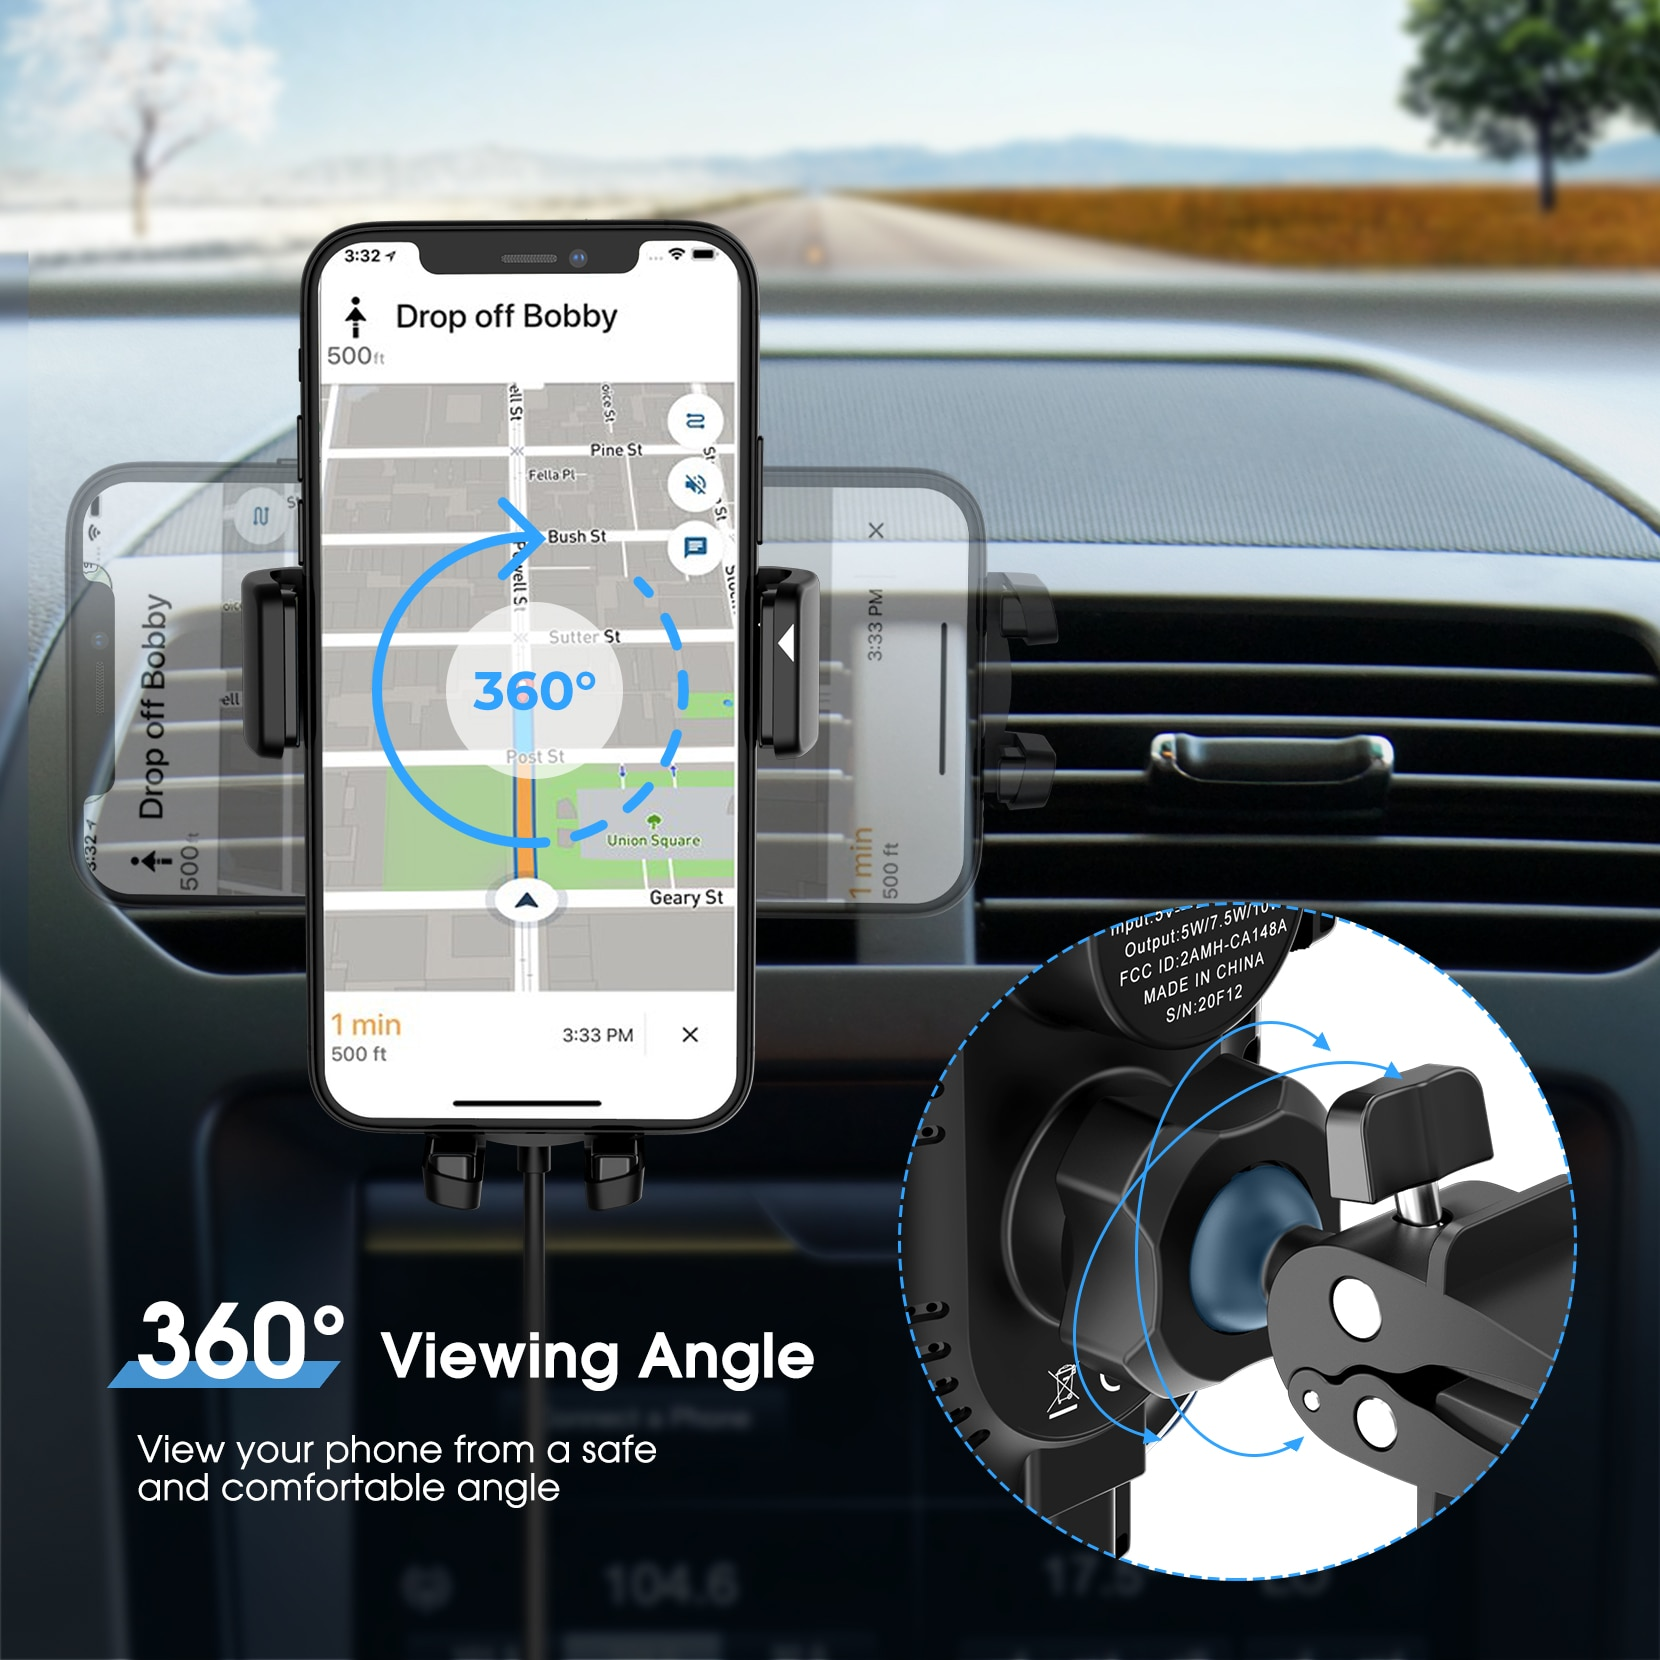 H25e421fb12ce437aa65ef52ceab9485bq - Mpow Wireless Car Charger Mount 10W Auto-clamping Qi Fast Charging Car Mount with Power Storage Car Phone Holder for iPhone 12